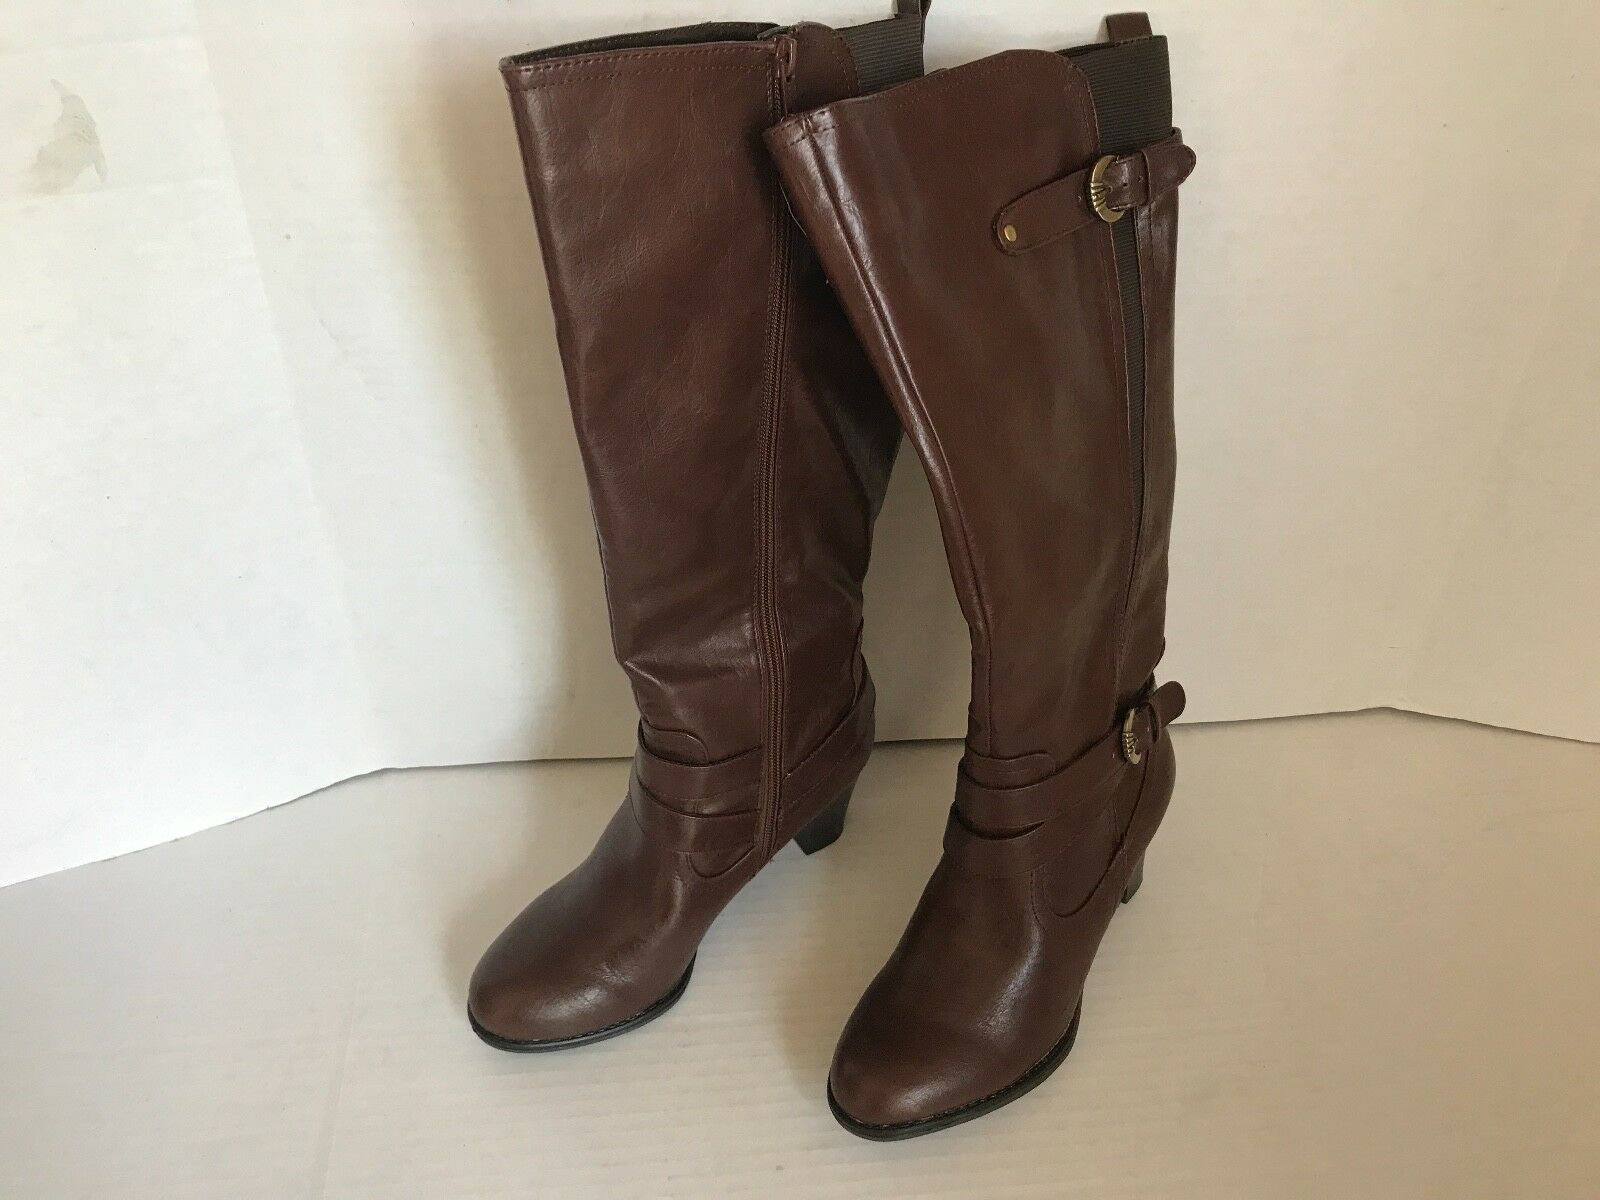 Life Stride Women's Yasir Brown Leather Knee High Boots Size 7.5M